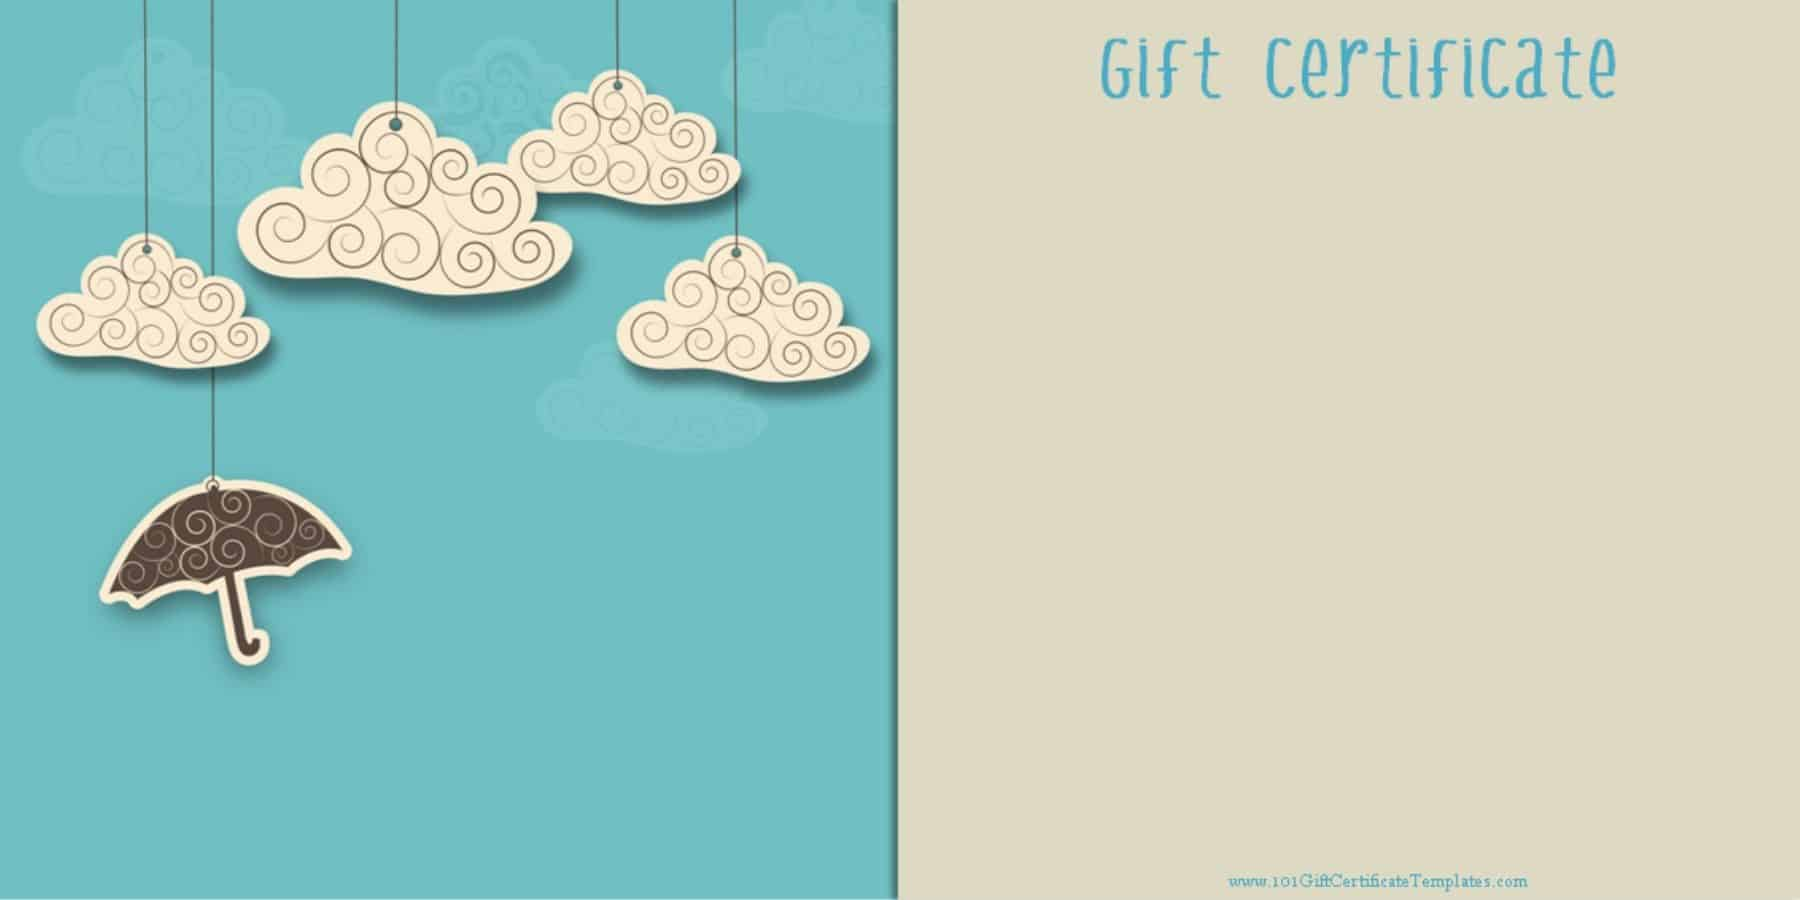 images for gift certificate template